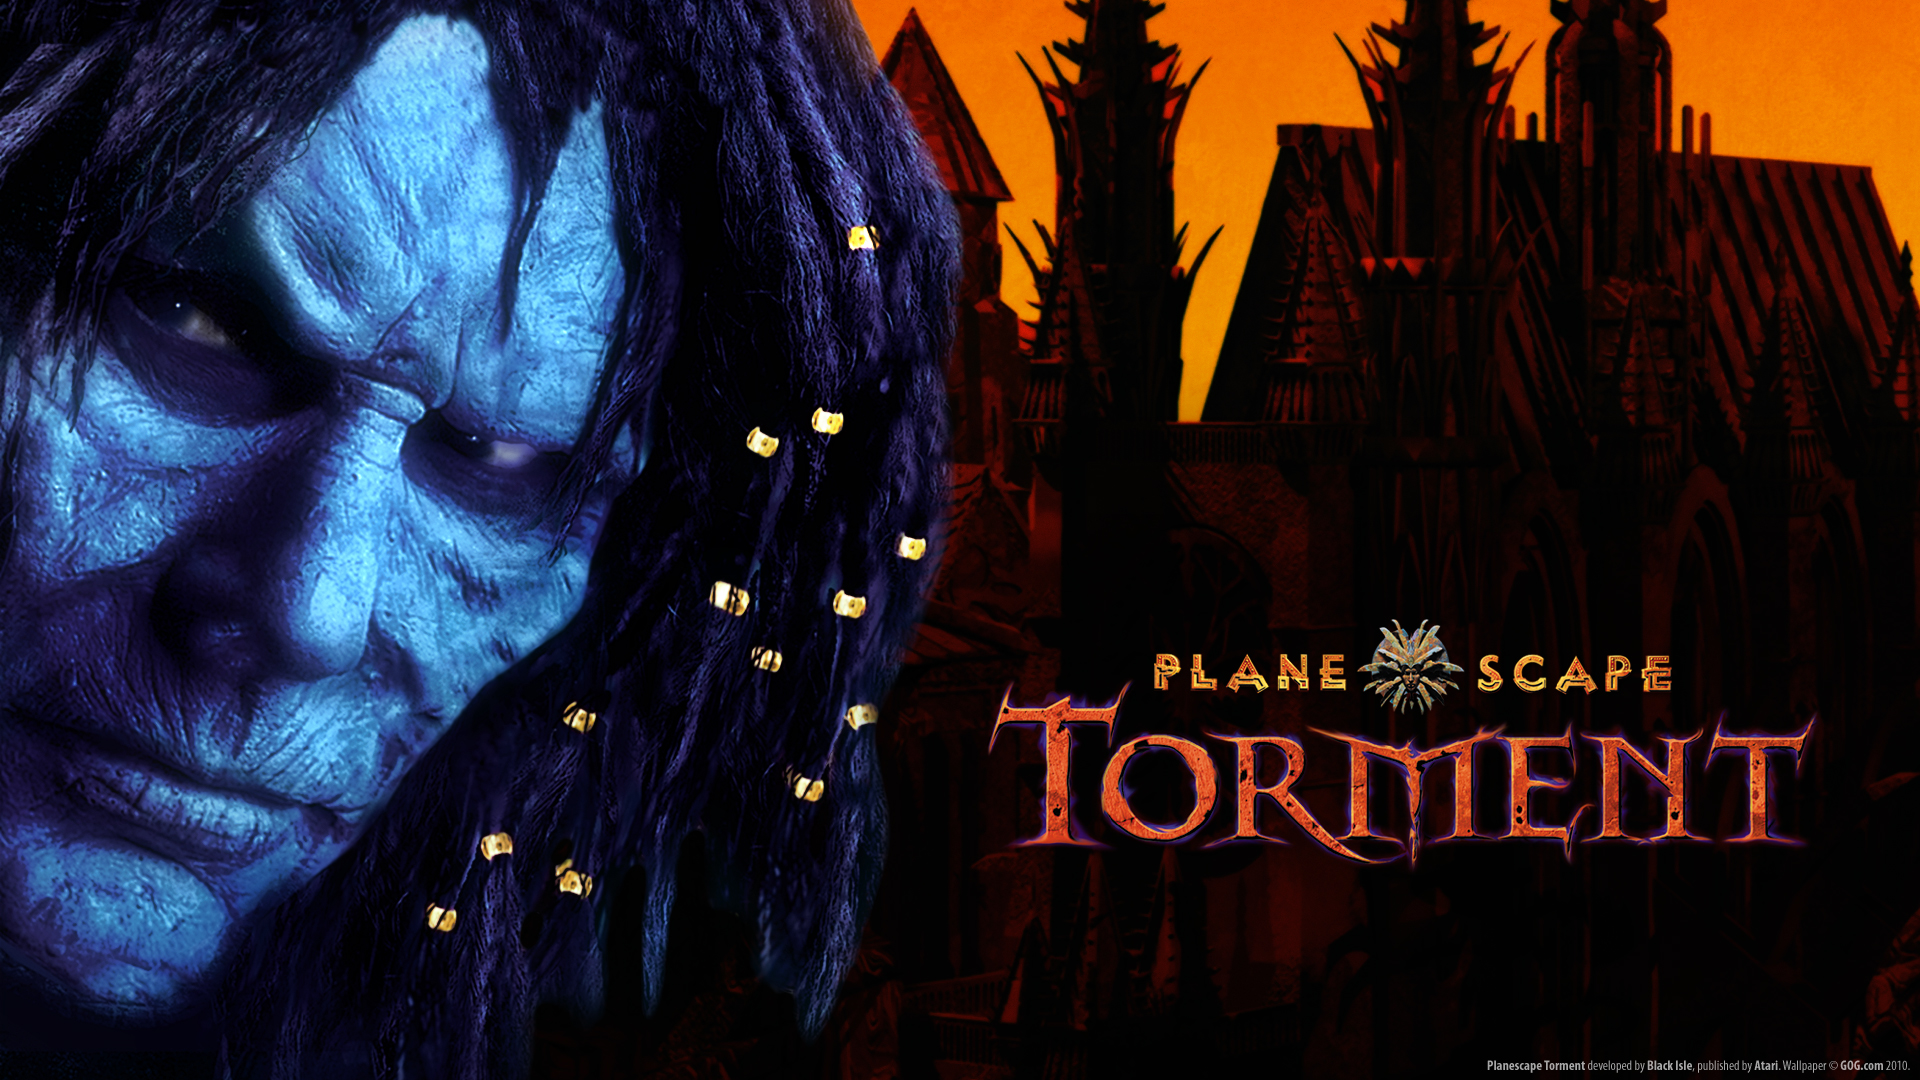 Planescape Torment: What can Change the Nature of a Man